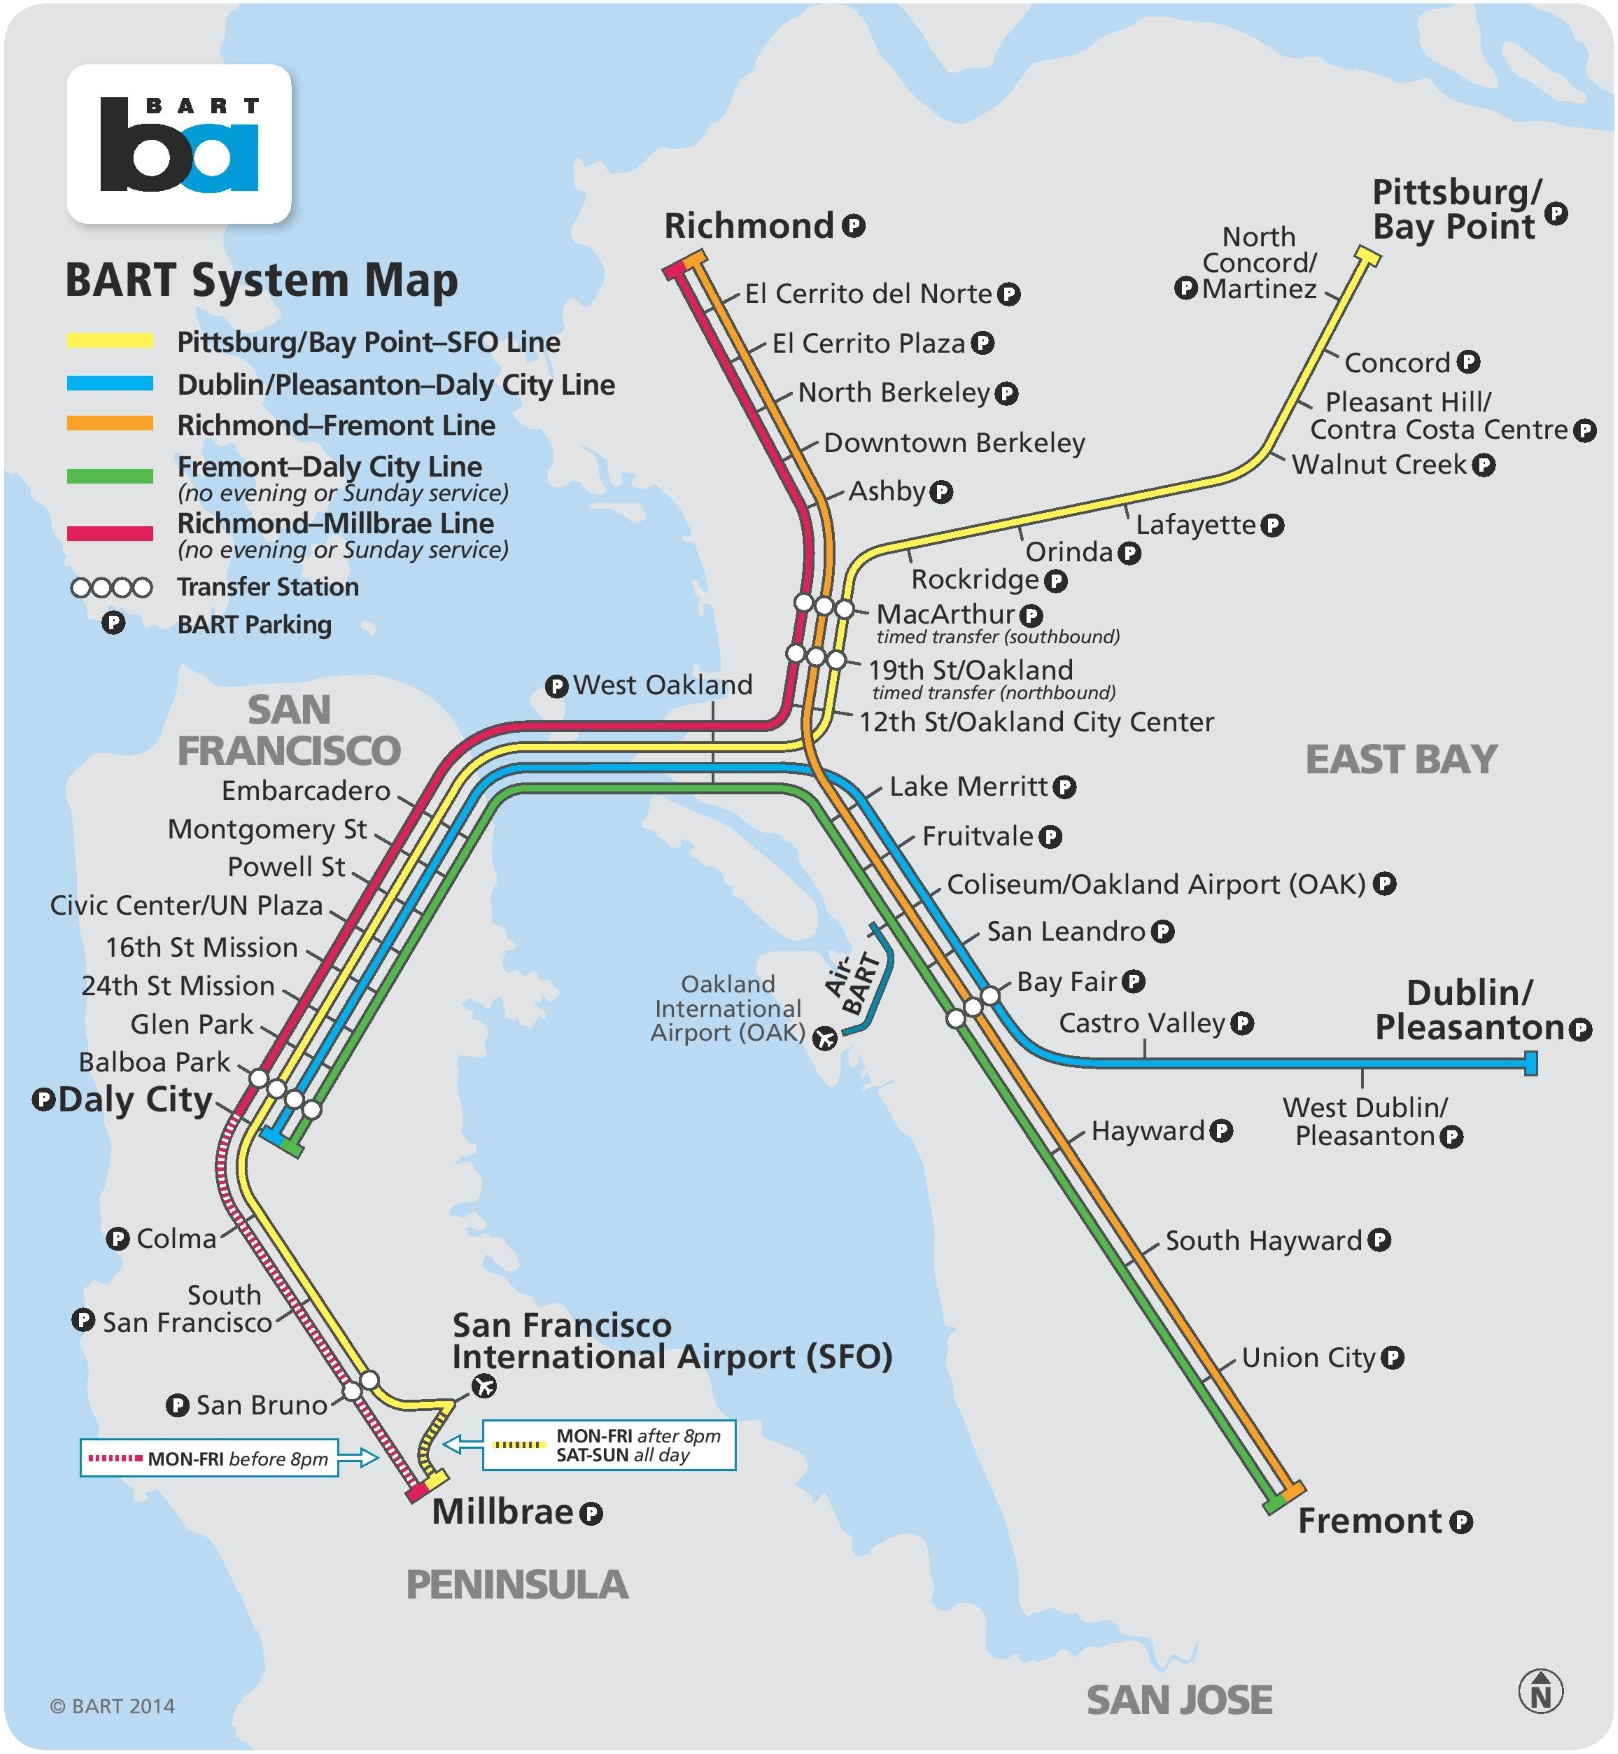 San Francisco BART map on atlanta bart map, sacramento bart map, bart bus map, berkeley bart map, original bart map, walnut creek bart map, bay area bart map, bart system map, oakland bart map, richmond bart map, california bart map, bart muni map, bart station map, pleasanton bart map, east bay bart map, future bart map, bart sfo airport map, los angeles bart map, pittsburgh bart map, dallas bart map,